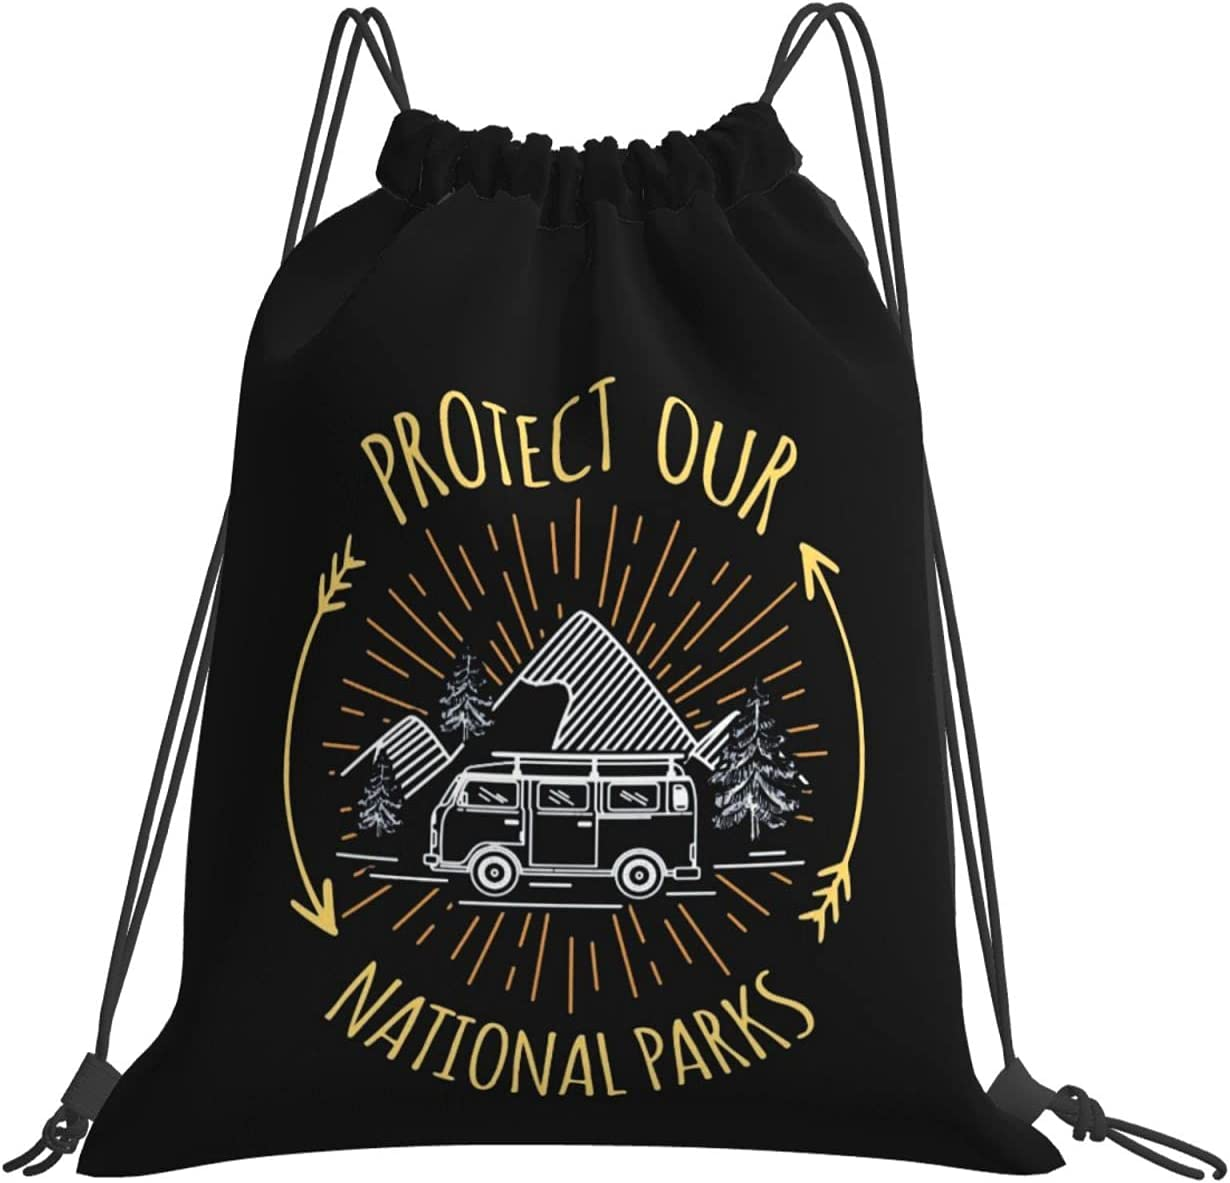 Protect Our Animer and price revision National Parks Drawstring Bags Gym Sack T Beam Max 62% OFF Mouth